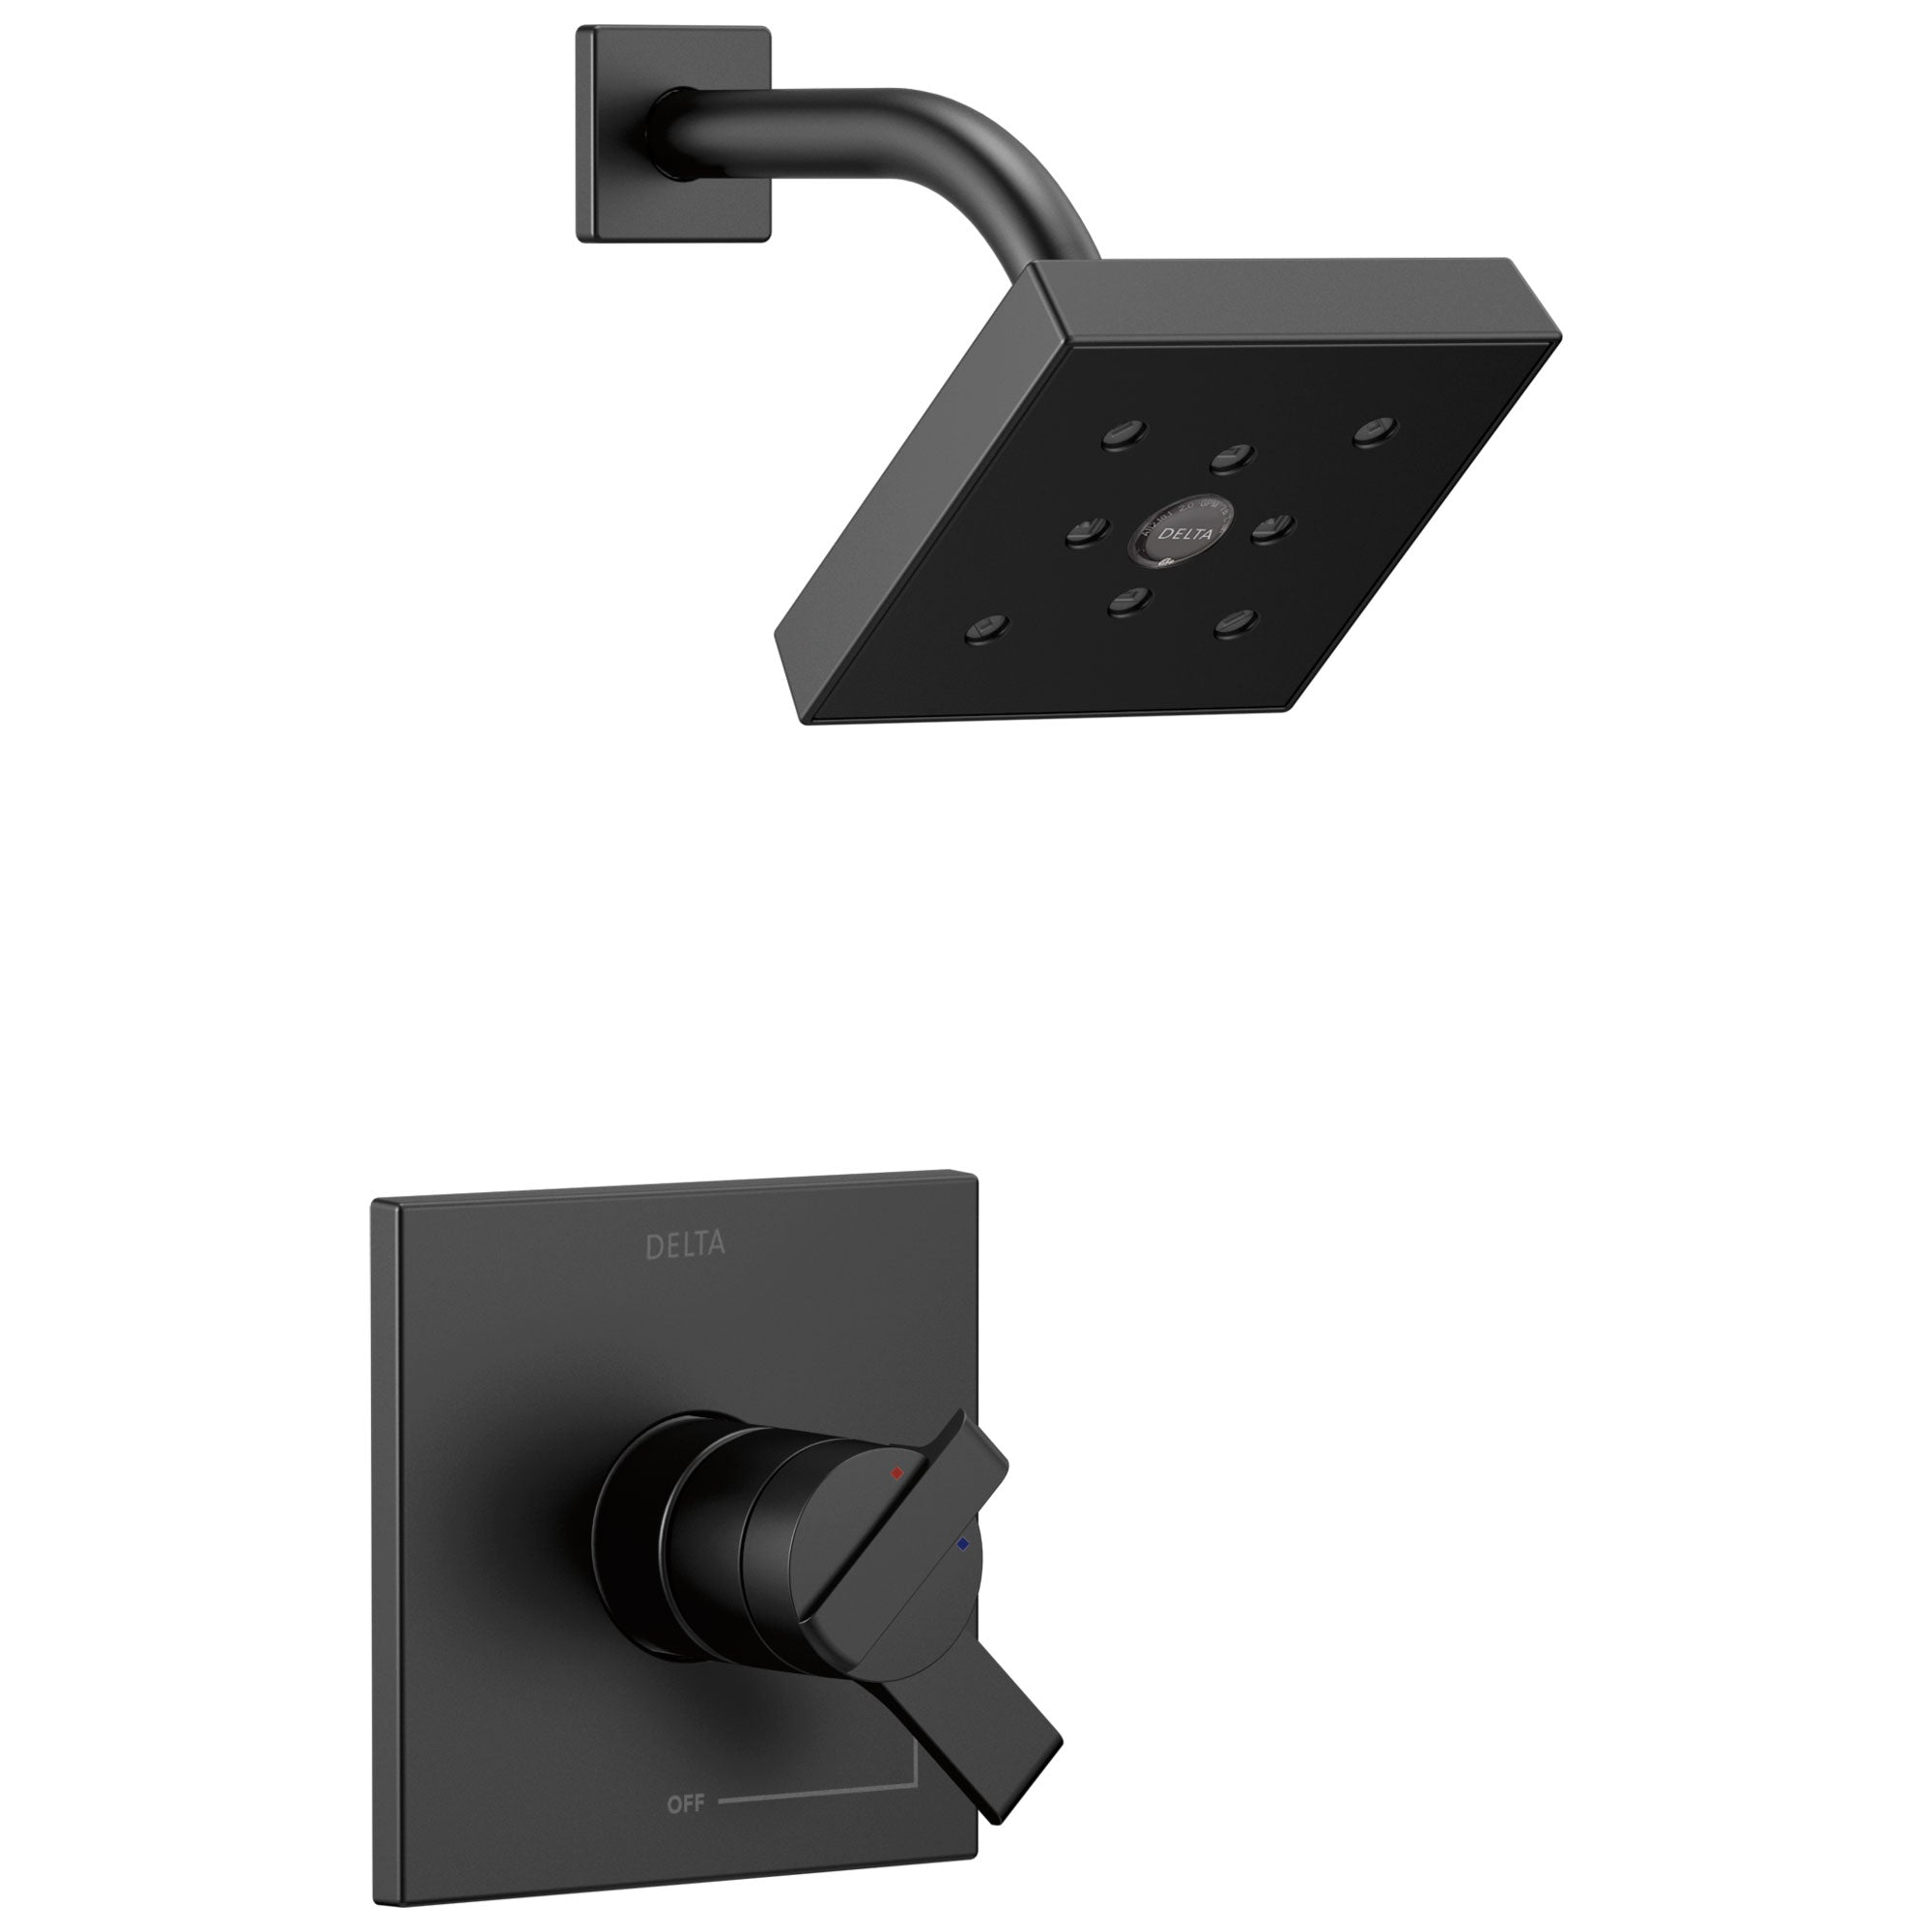 Delta Ara Collection Matte Black Finish Dual Water Pressure and Temperature Control Watersense Shower Only Faucet Trim (Requires Valve) DT17267BL